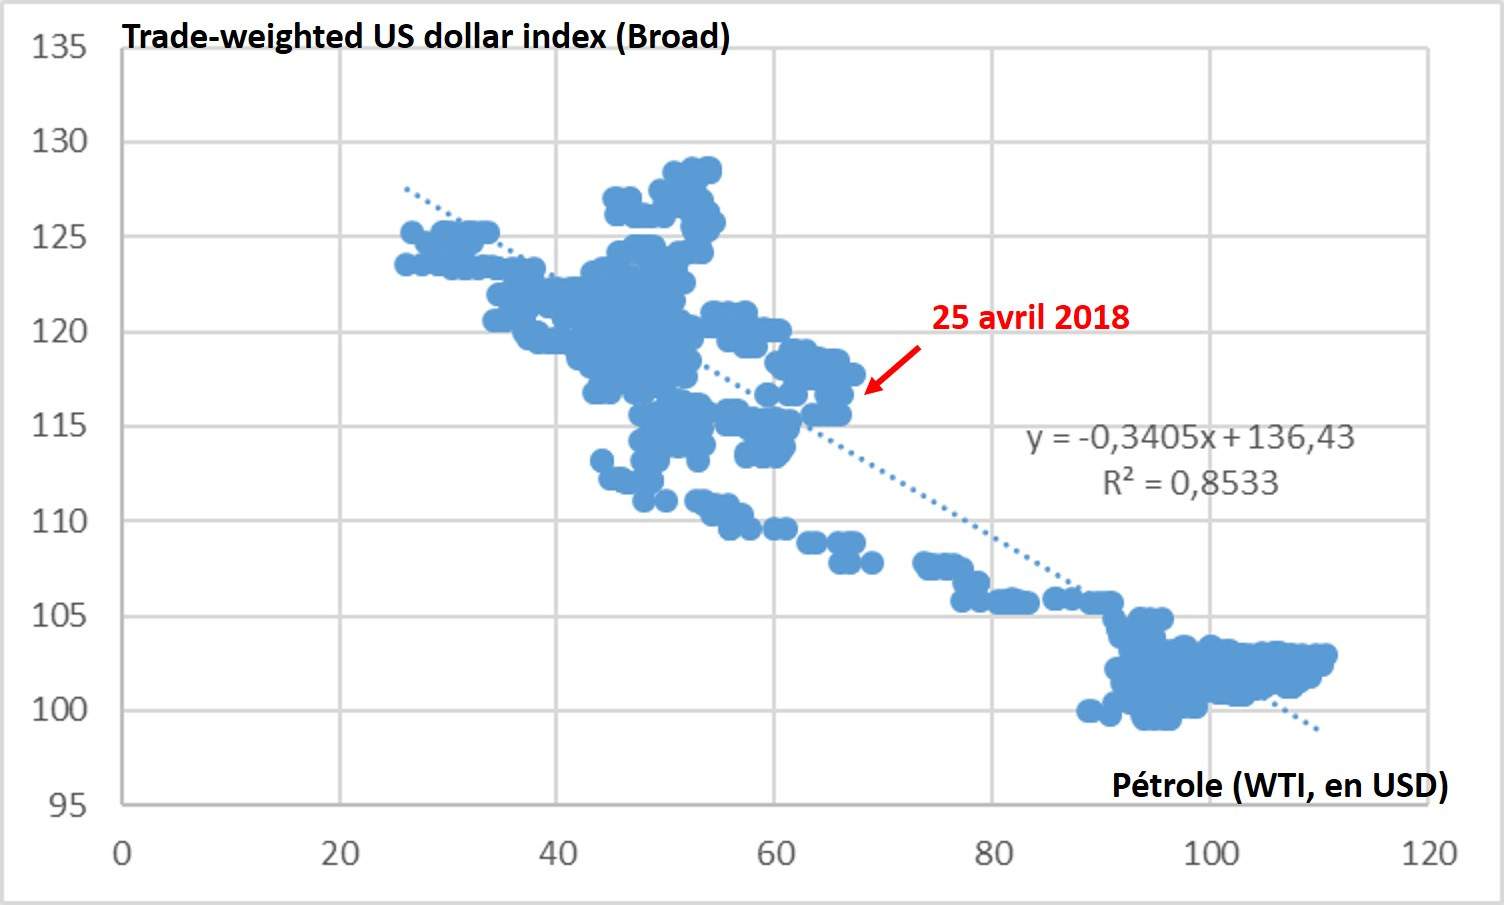 https://www.devenir-rentier.fr/uploads/12850_2018-04-25_trade-weighted_usd_vs_oil.jpg